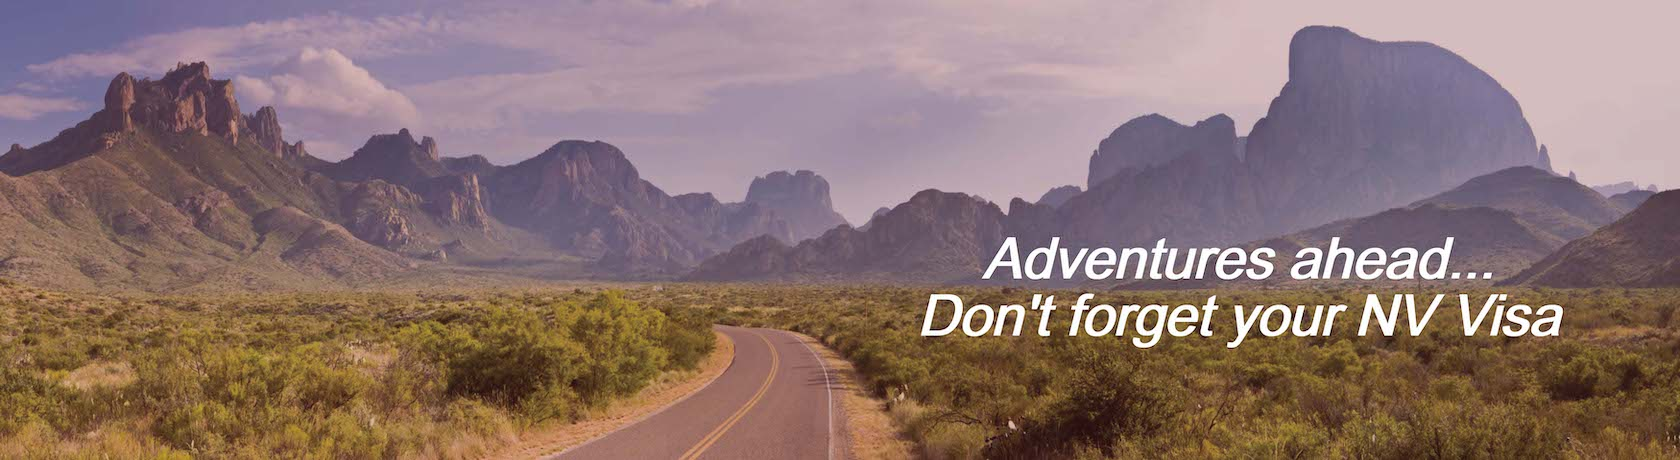 Adventures ahead? Don't forget your NuVista Visa